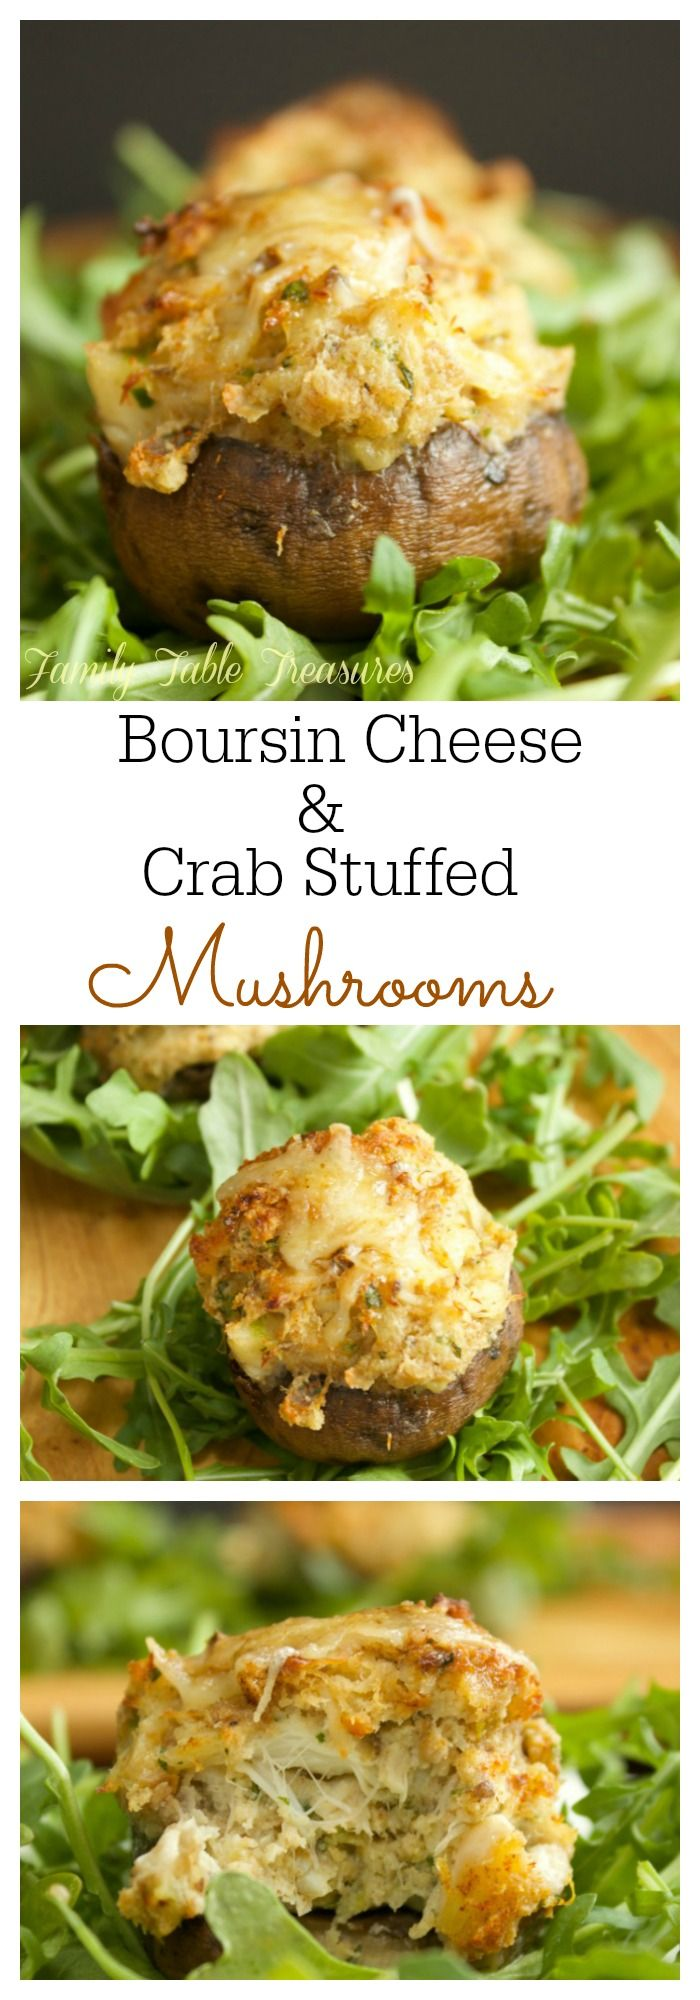 These Boursin Cheese & Crab Stuffed Mushrooms are melt in your mouth delicious.  They're so hearty you could even serve them as a meal! I'm not usually a fan of stuffed mushrooms but Mom made these a couple weeks ago and I found myself going back for a second helping!  I always taste everything that makes …